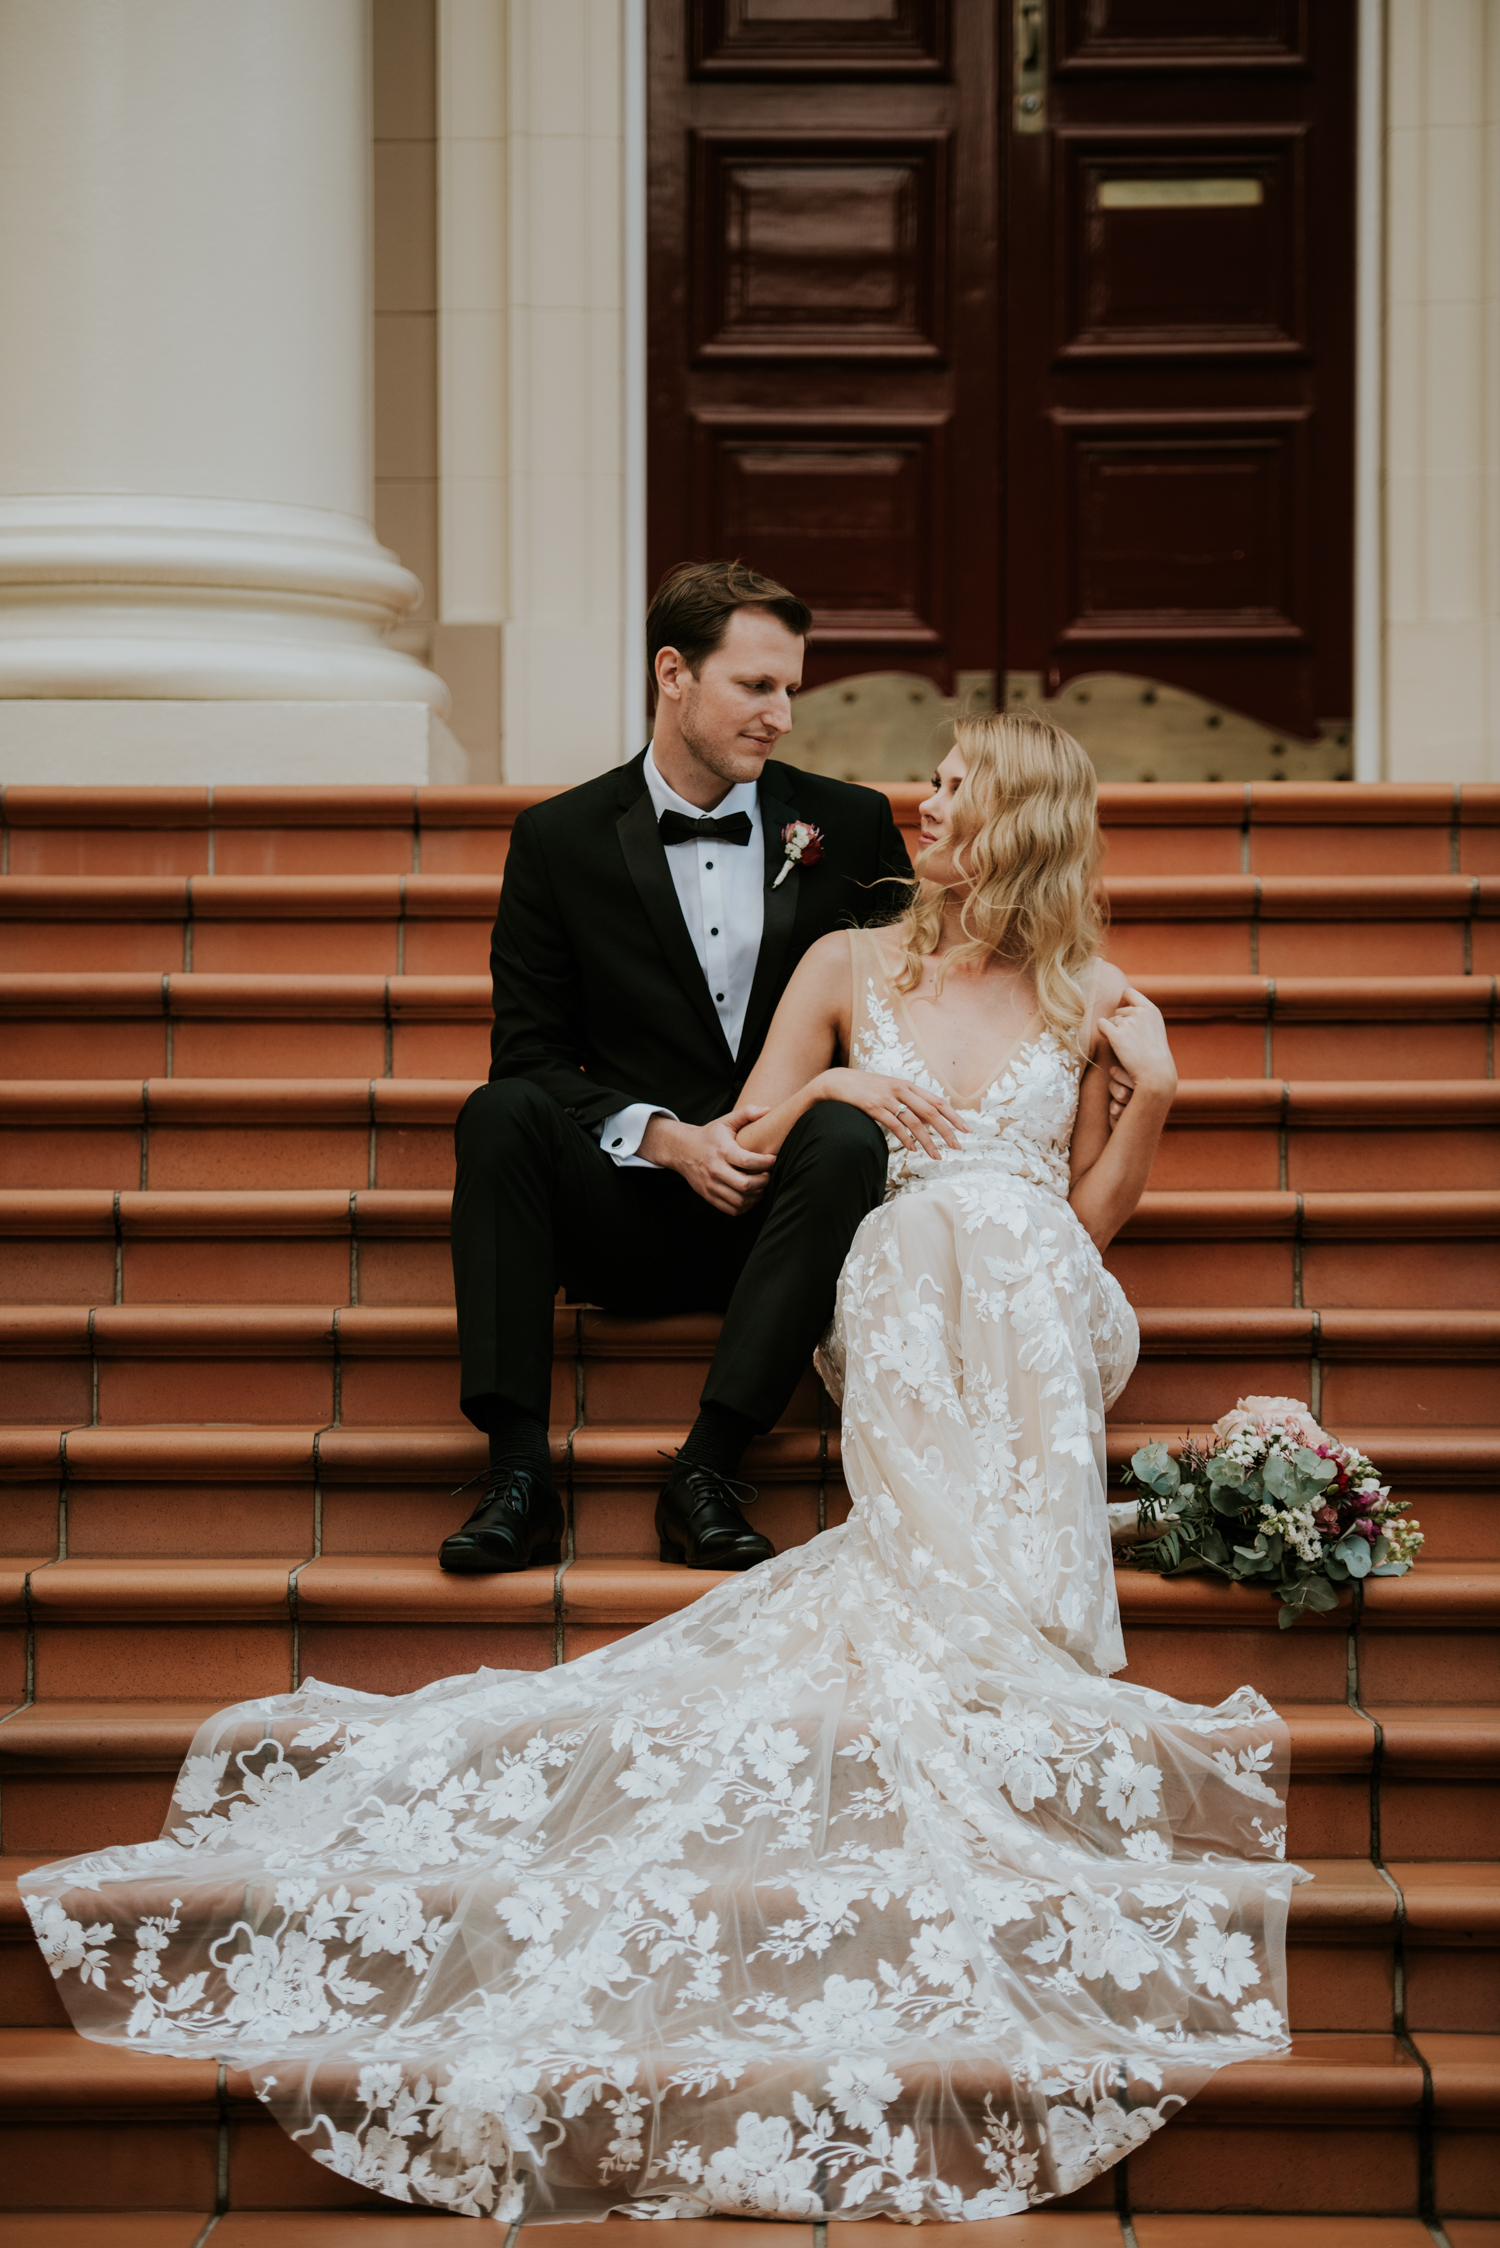 Brisbane Wedding Photographer | Engagement-Elopement Photography | Factory51-City Botantic Gardens Wedding-64.jpg